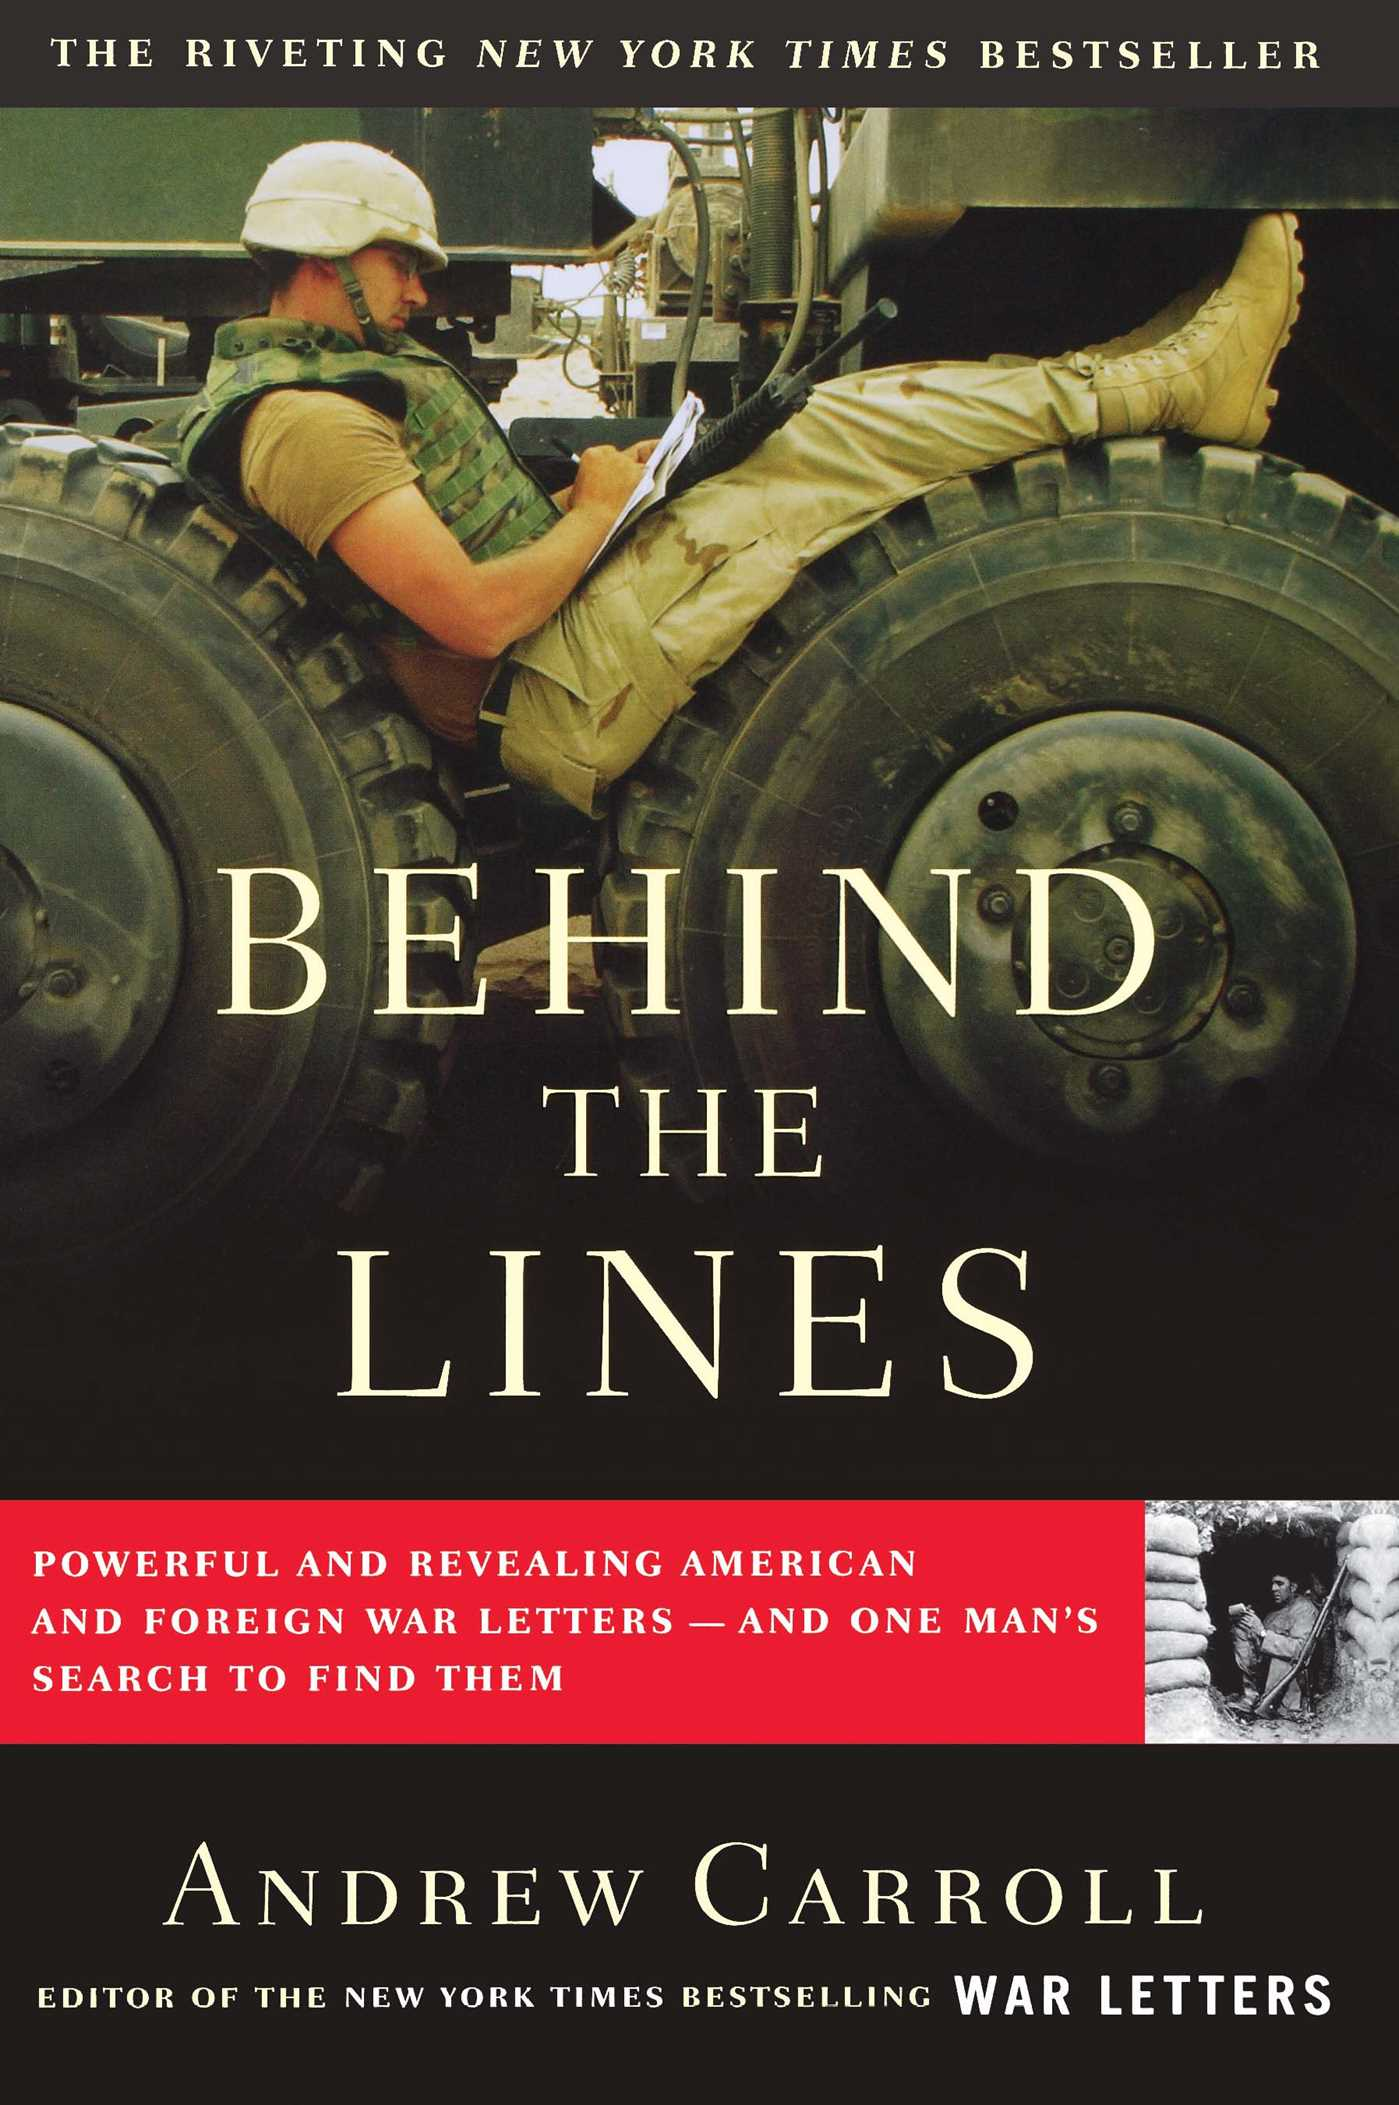 Behind-the-lines-9780743256179_hr